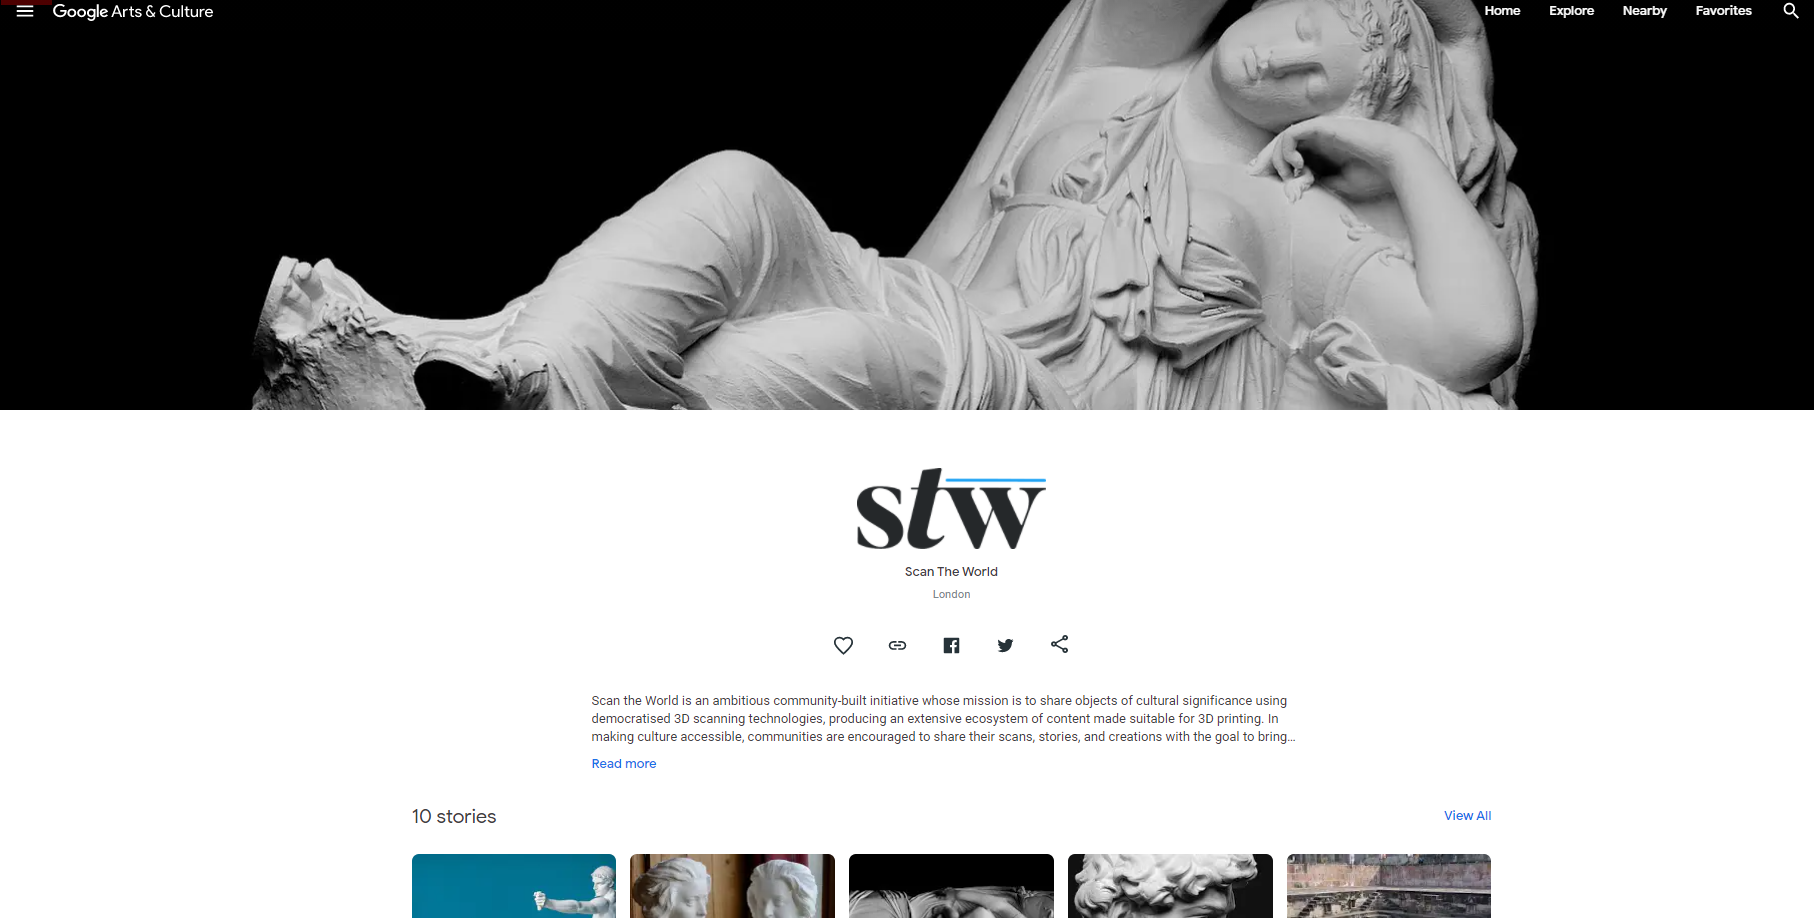 The partnership will see the data archived on Google Arts & Culture become viewable in 3D, with STL files available for download via Scan the World. Photo via Scan the World.